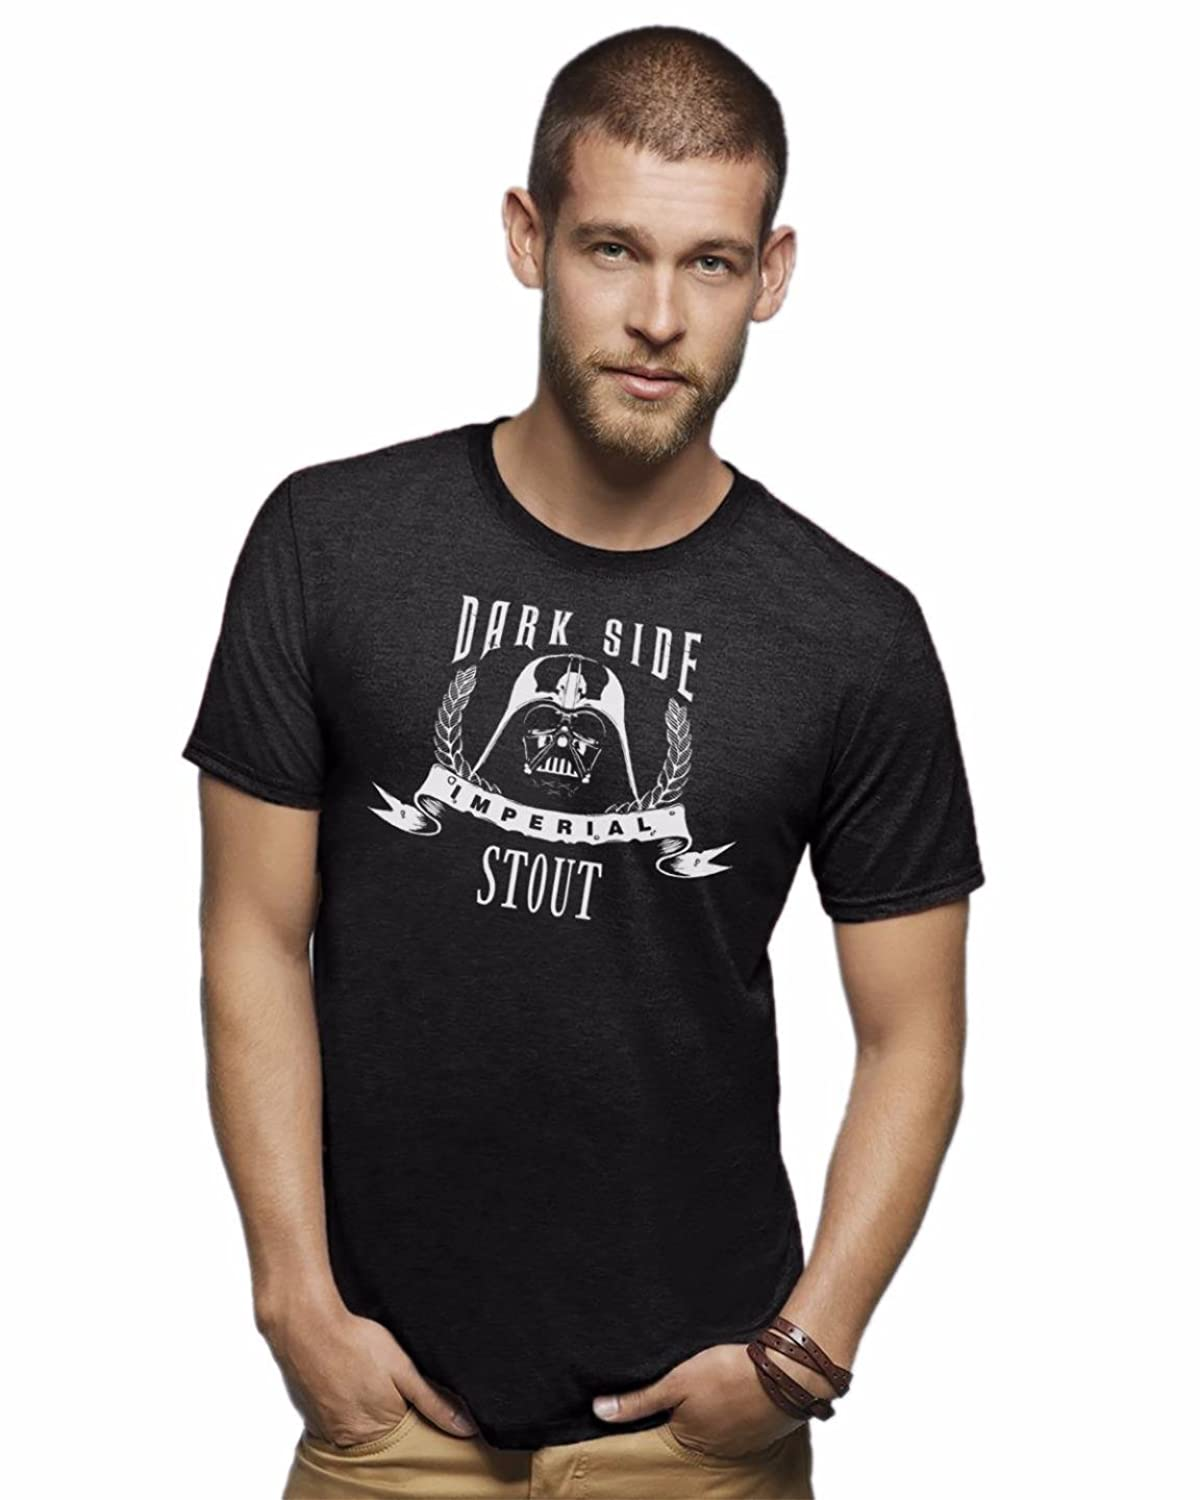 Guerrilla Tees Imperial Stout shirt funny imperial forces shirt sci graphic tee